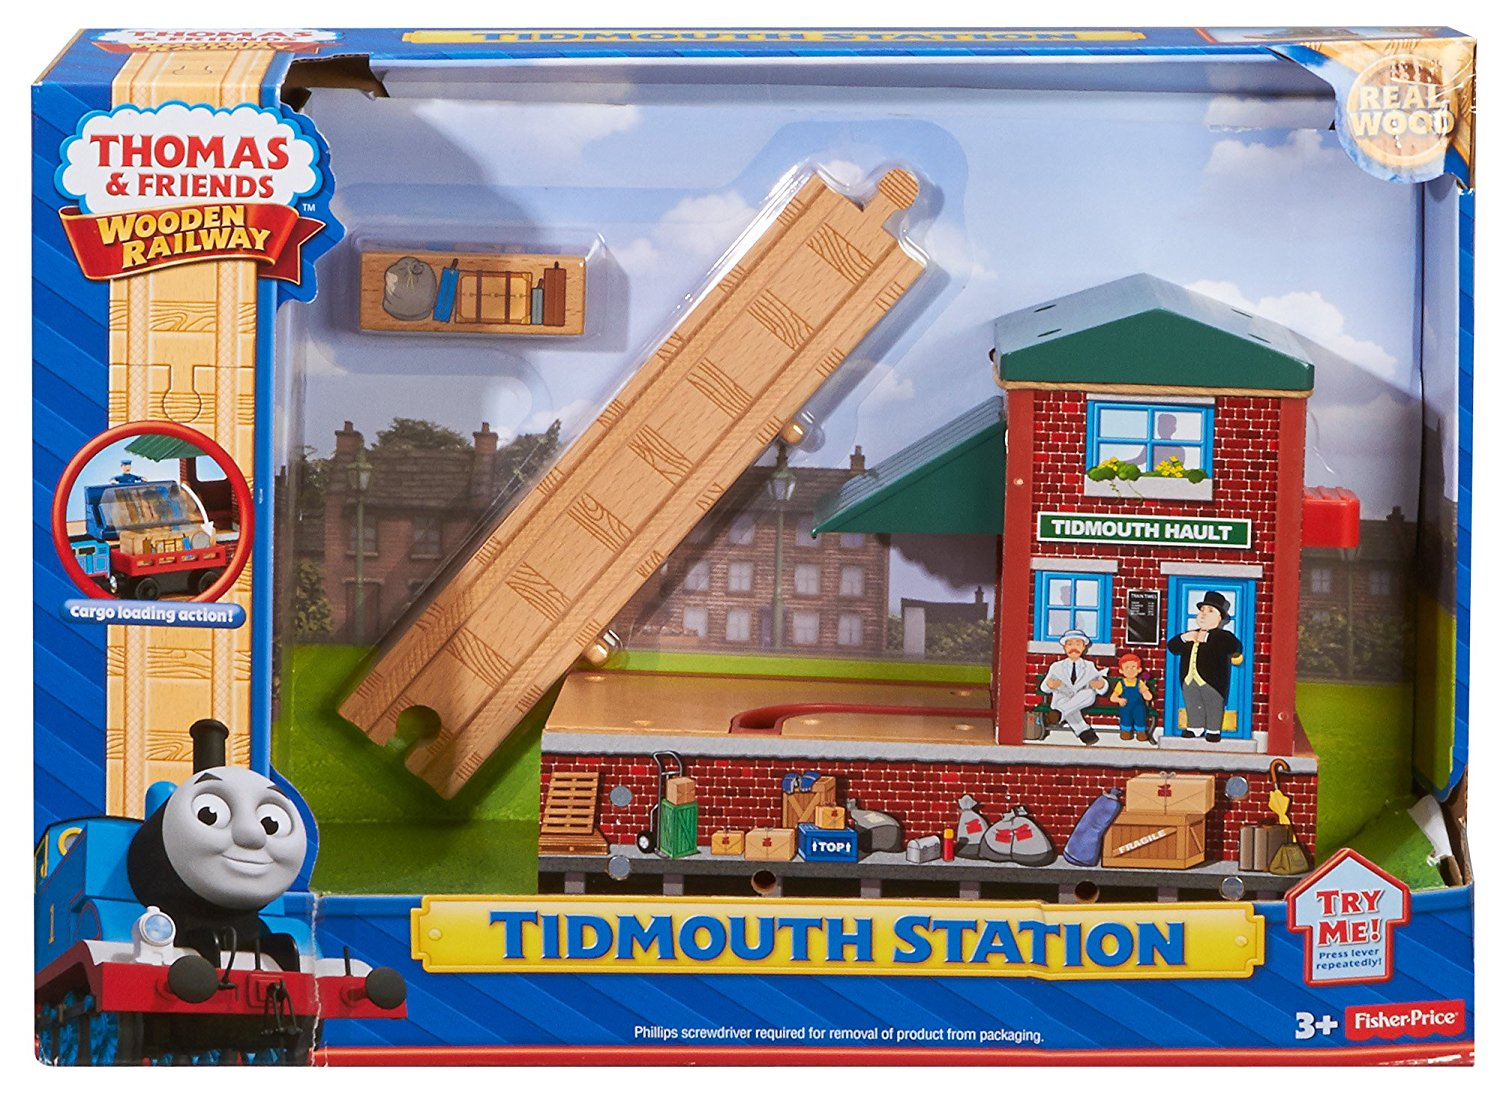 Fisher Price Thomas the Train Wooden Railway Tidmouth Station BDG09